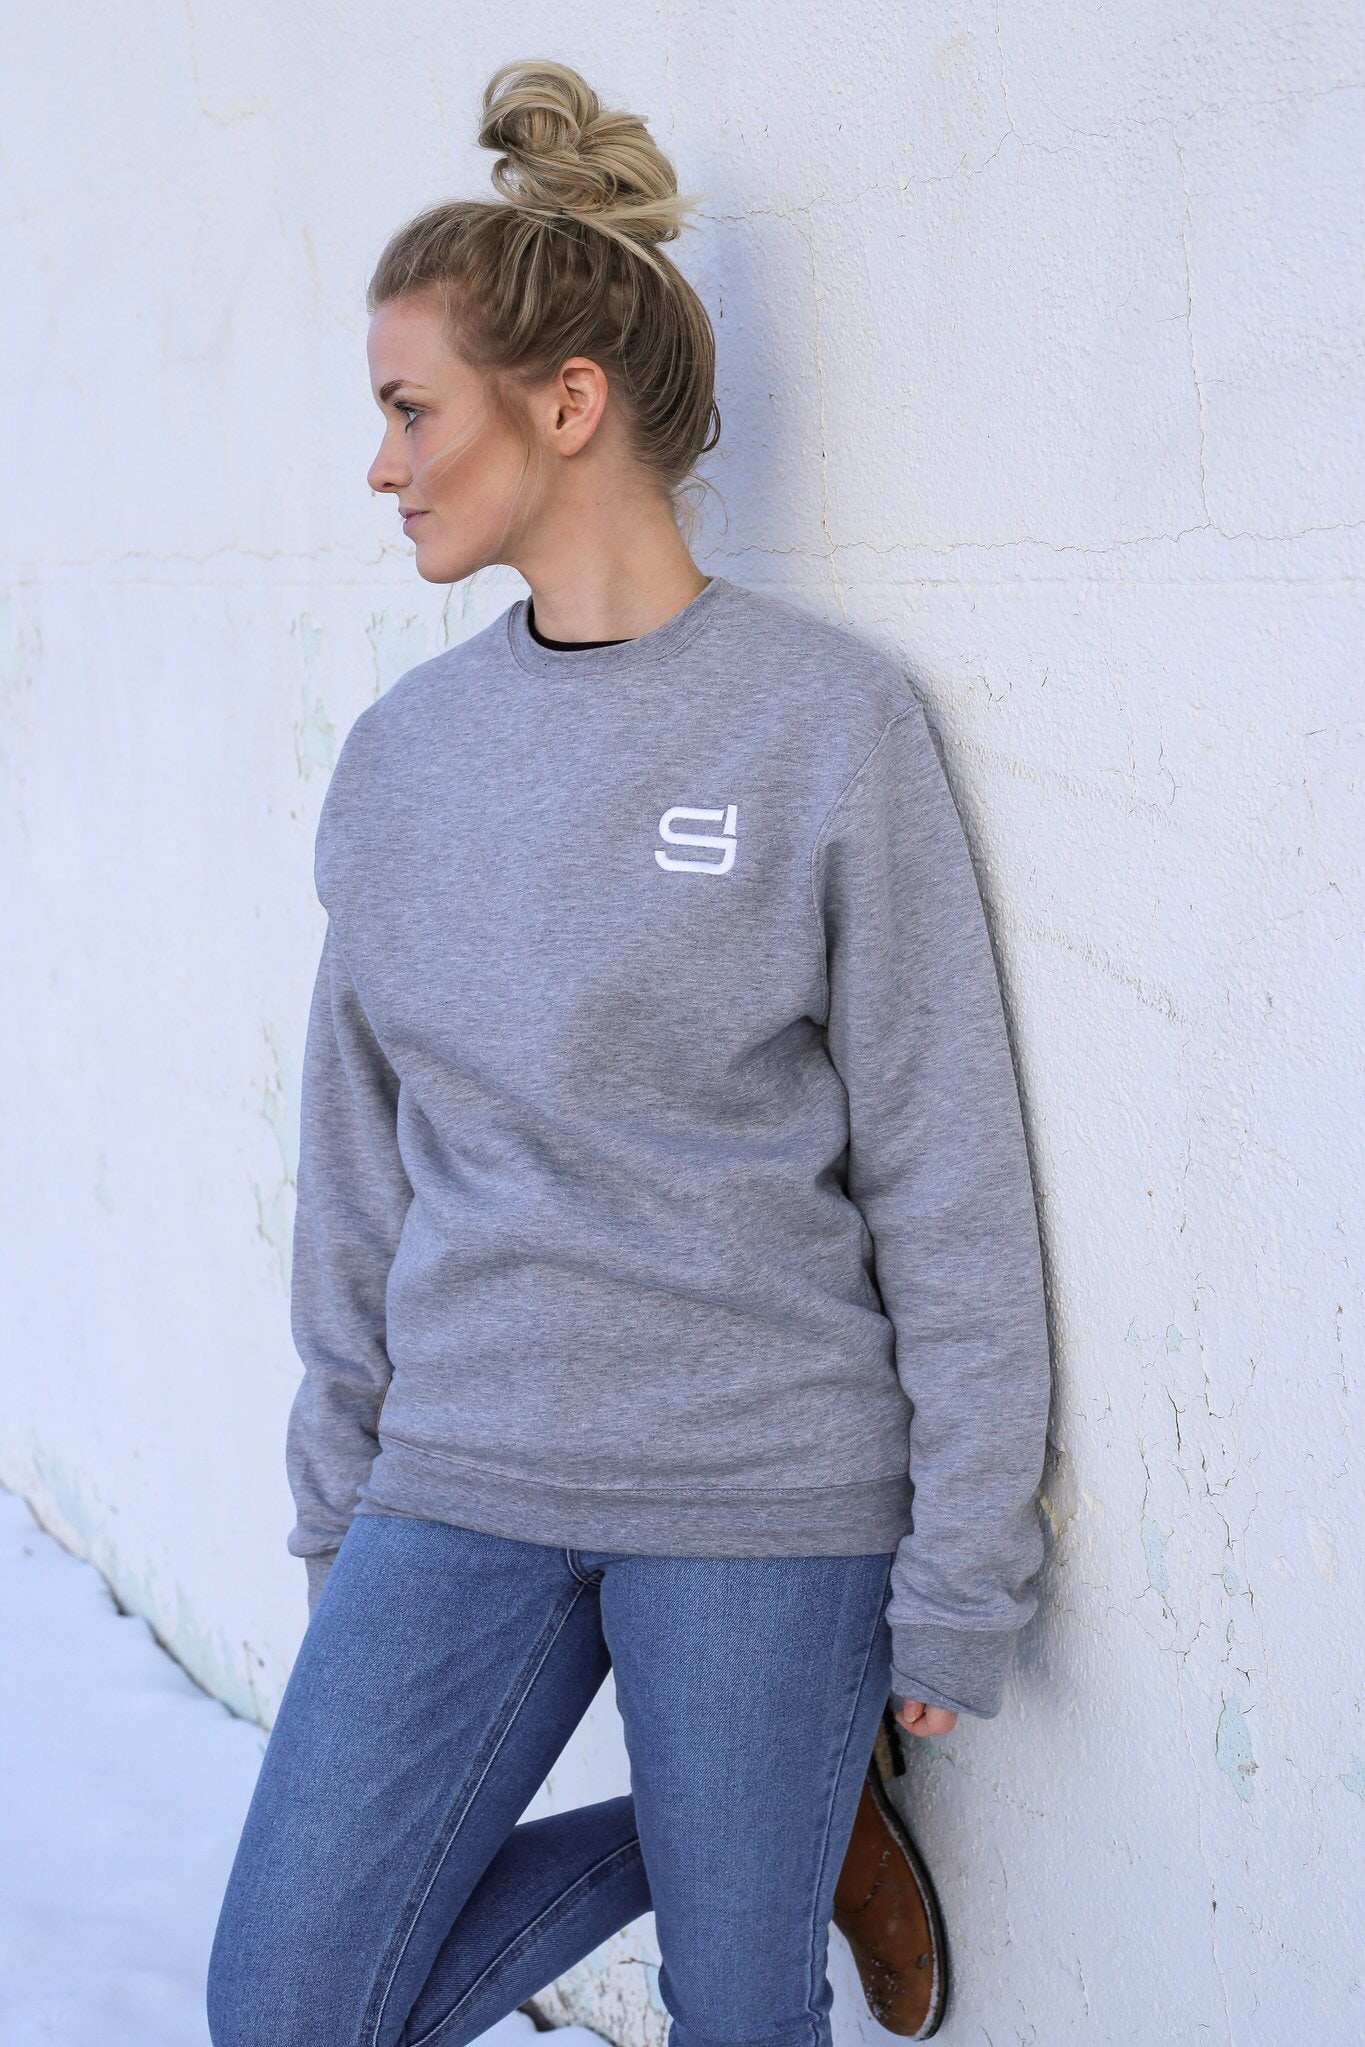 CLASSIC UNISEX CREW - Heather Grey